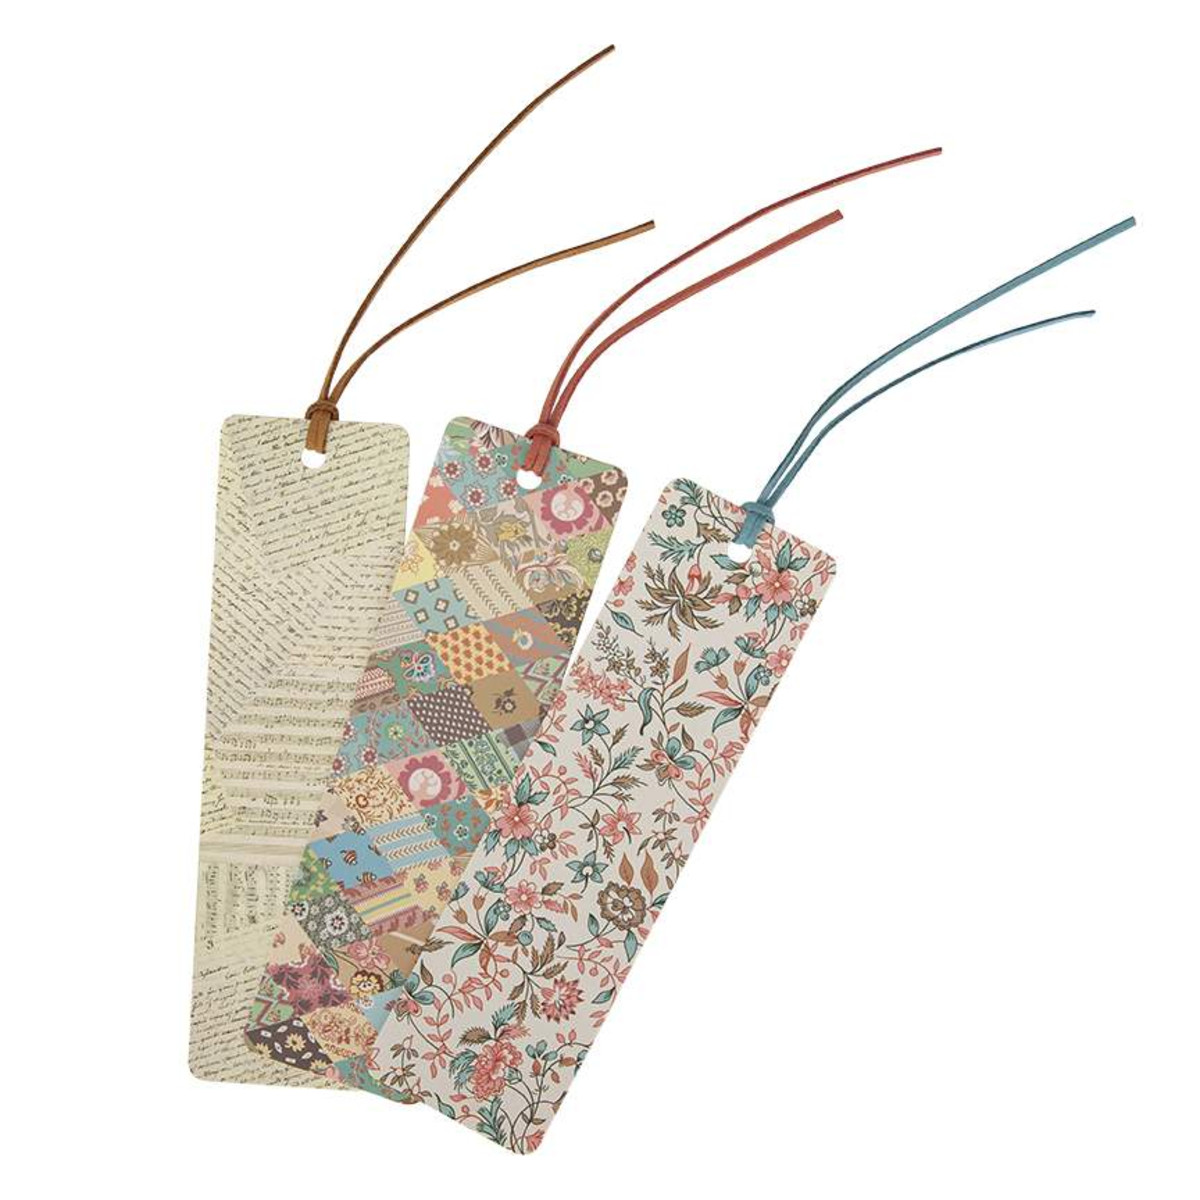 Jane Austen Bookmarks - Set of 3